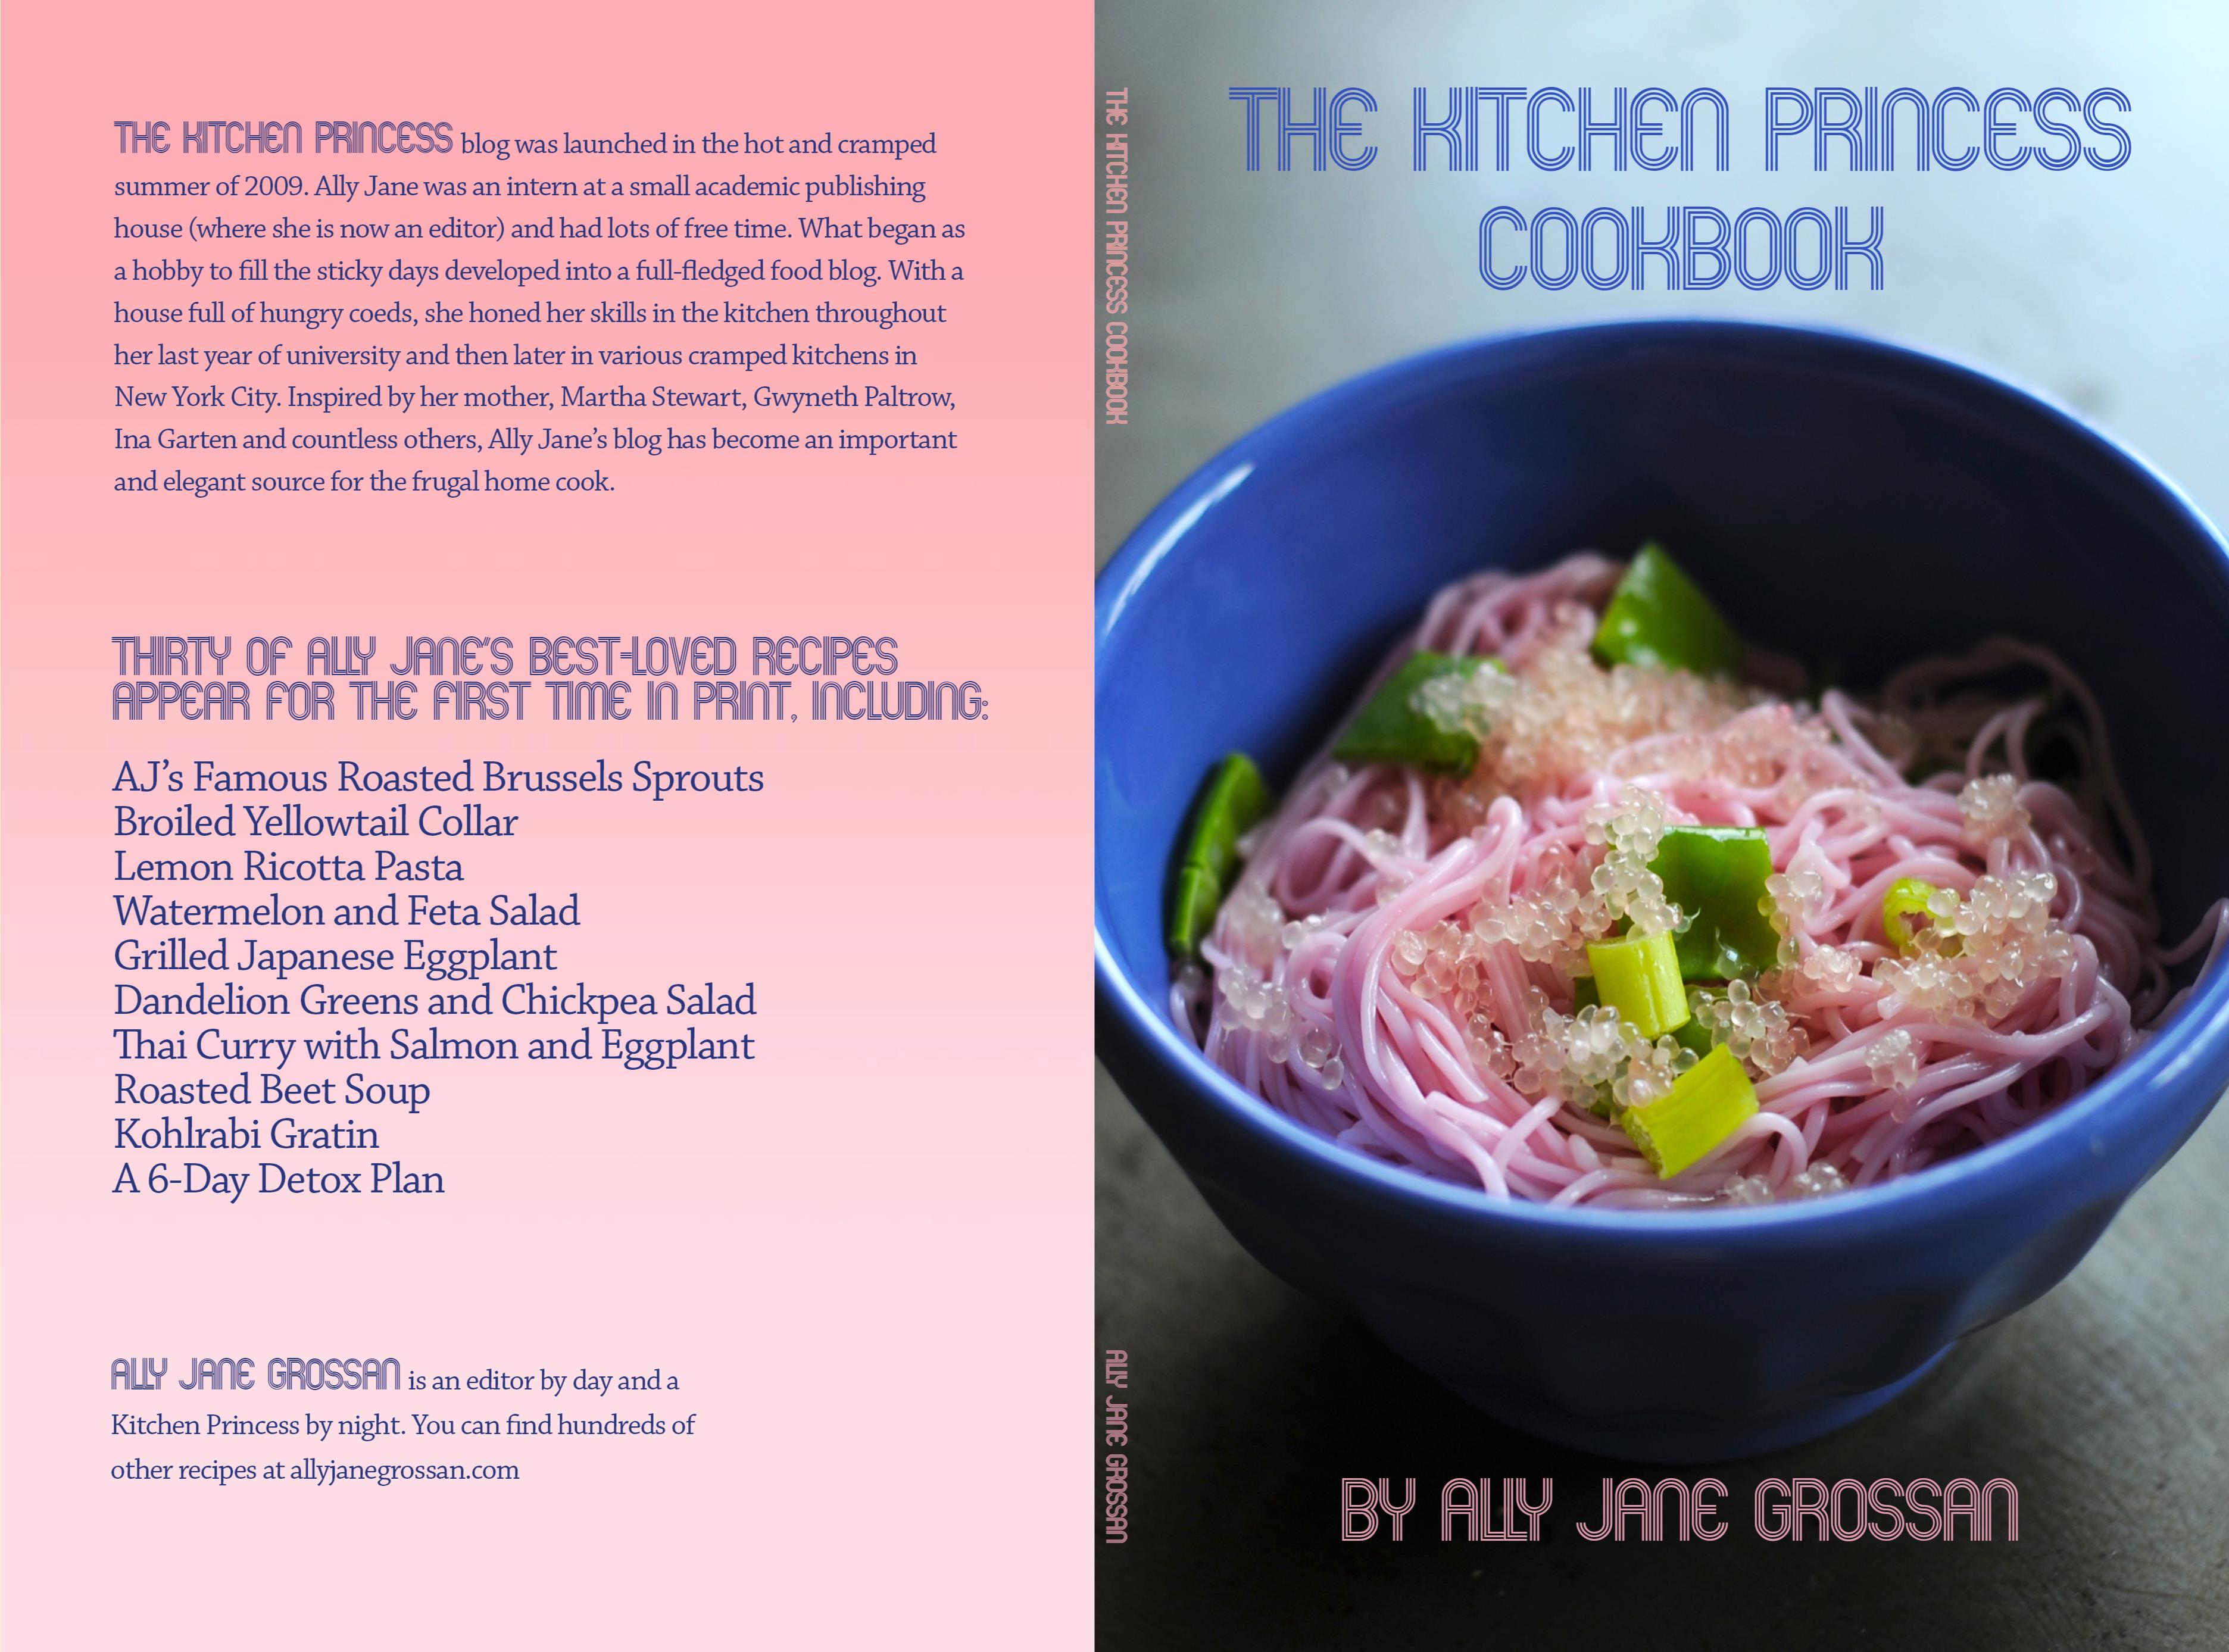 The kitchen princess cookbook by ally jane grossan 1551 the kitchen princess cookbook cover image forumfinder Choice Image